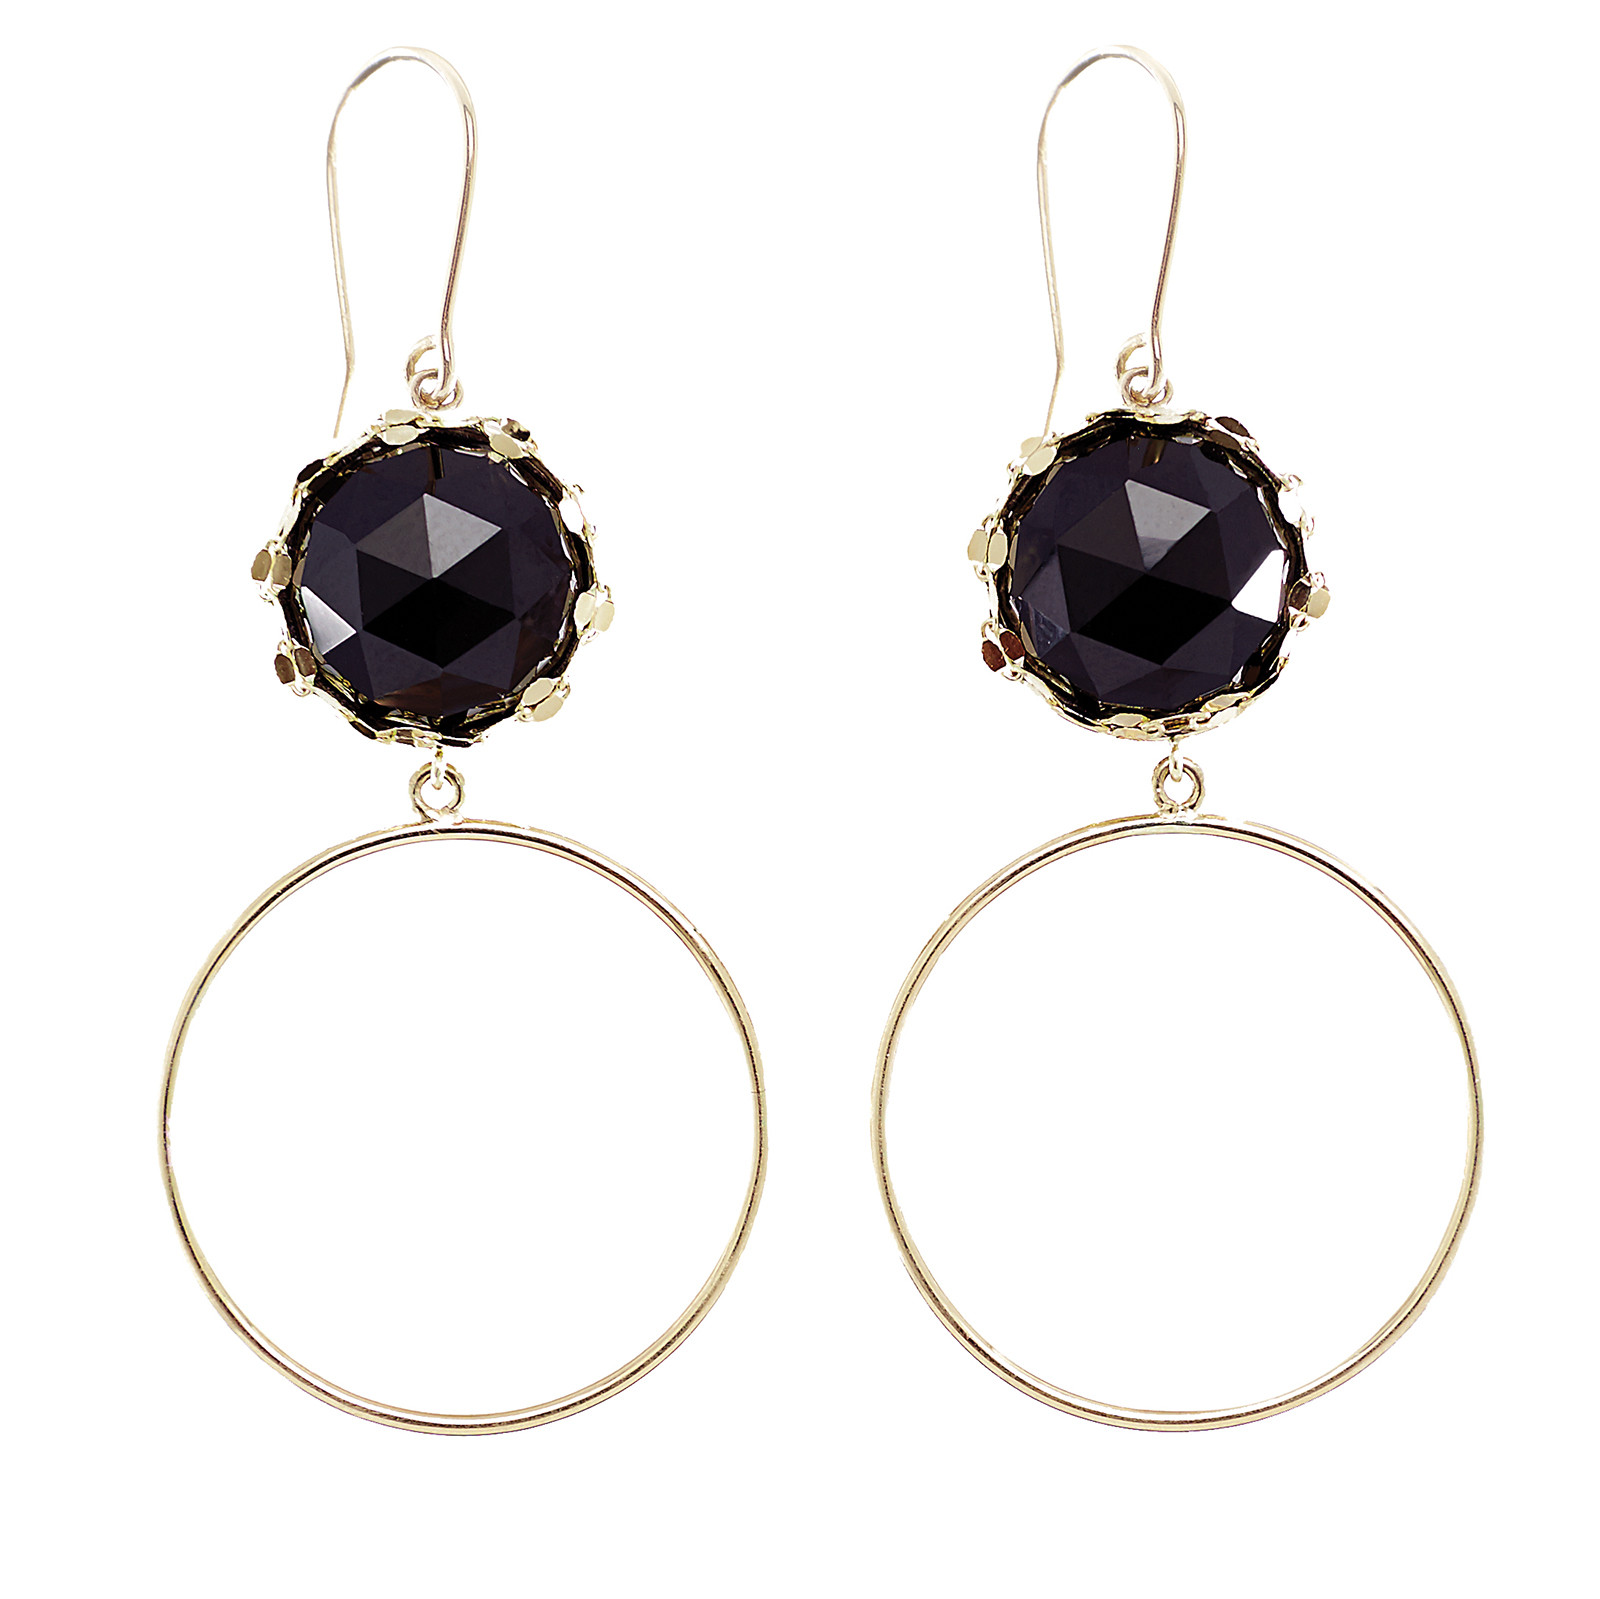 New Lana Onyx Rosecut Noir Dangle Hoops